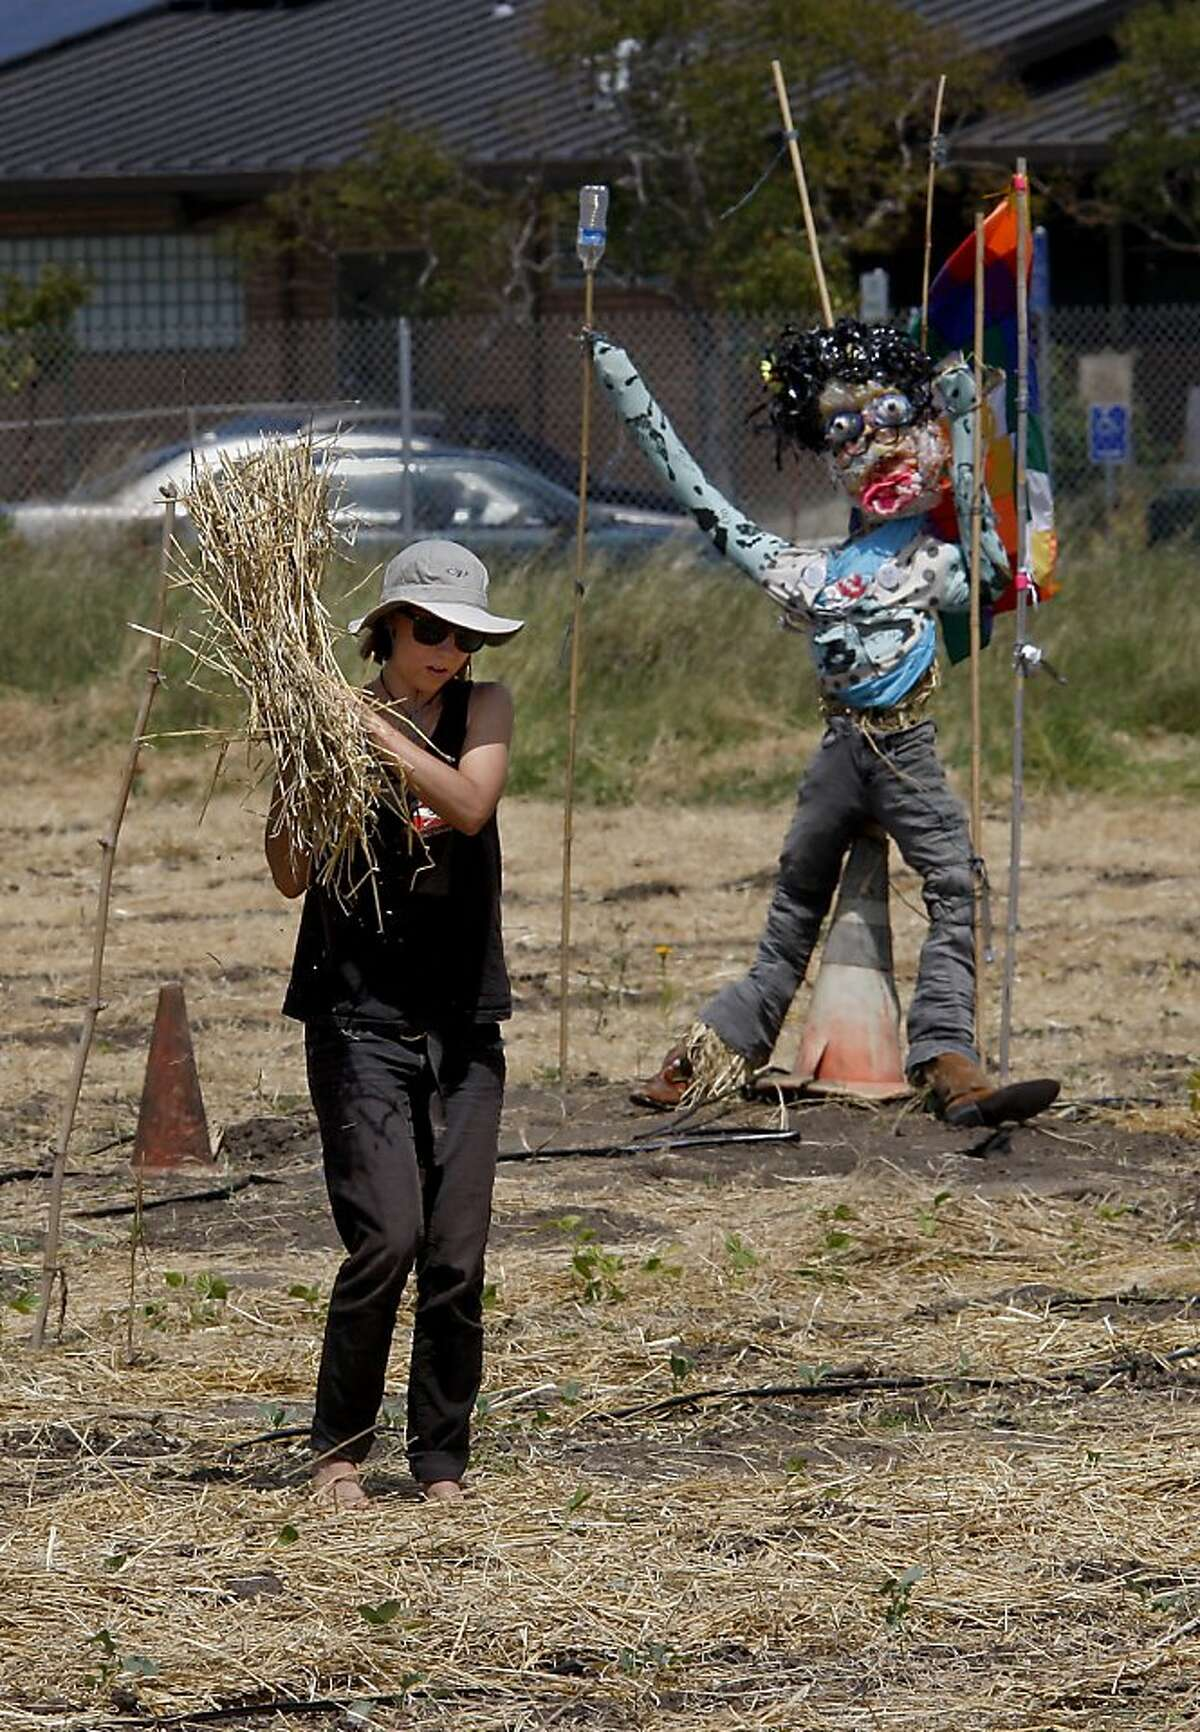 Hay is being spread around the vegetables as a mulch as water is precious. Despite rumors of a crackdown on the garden planted by Occupy forces at UC's experimental garden facility in Albany, Calif., farming went on although the water is still shut off.